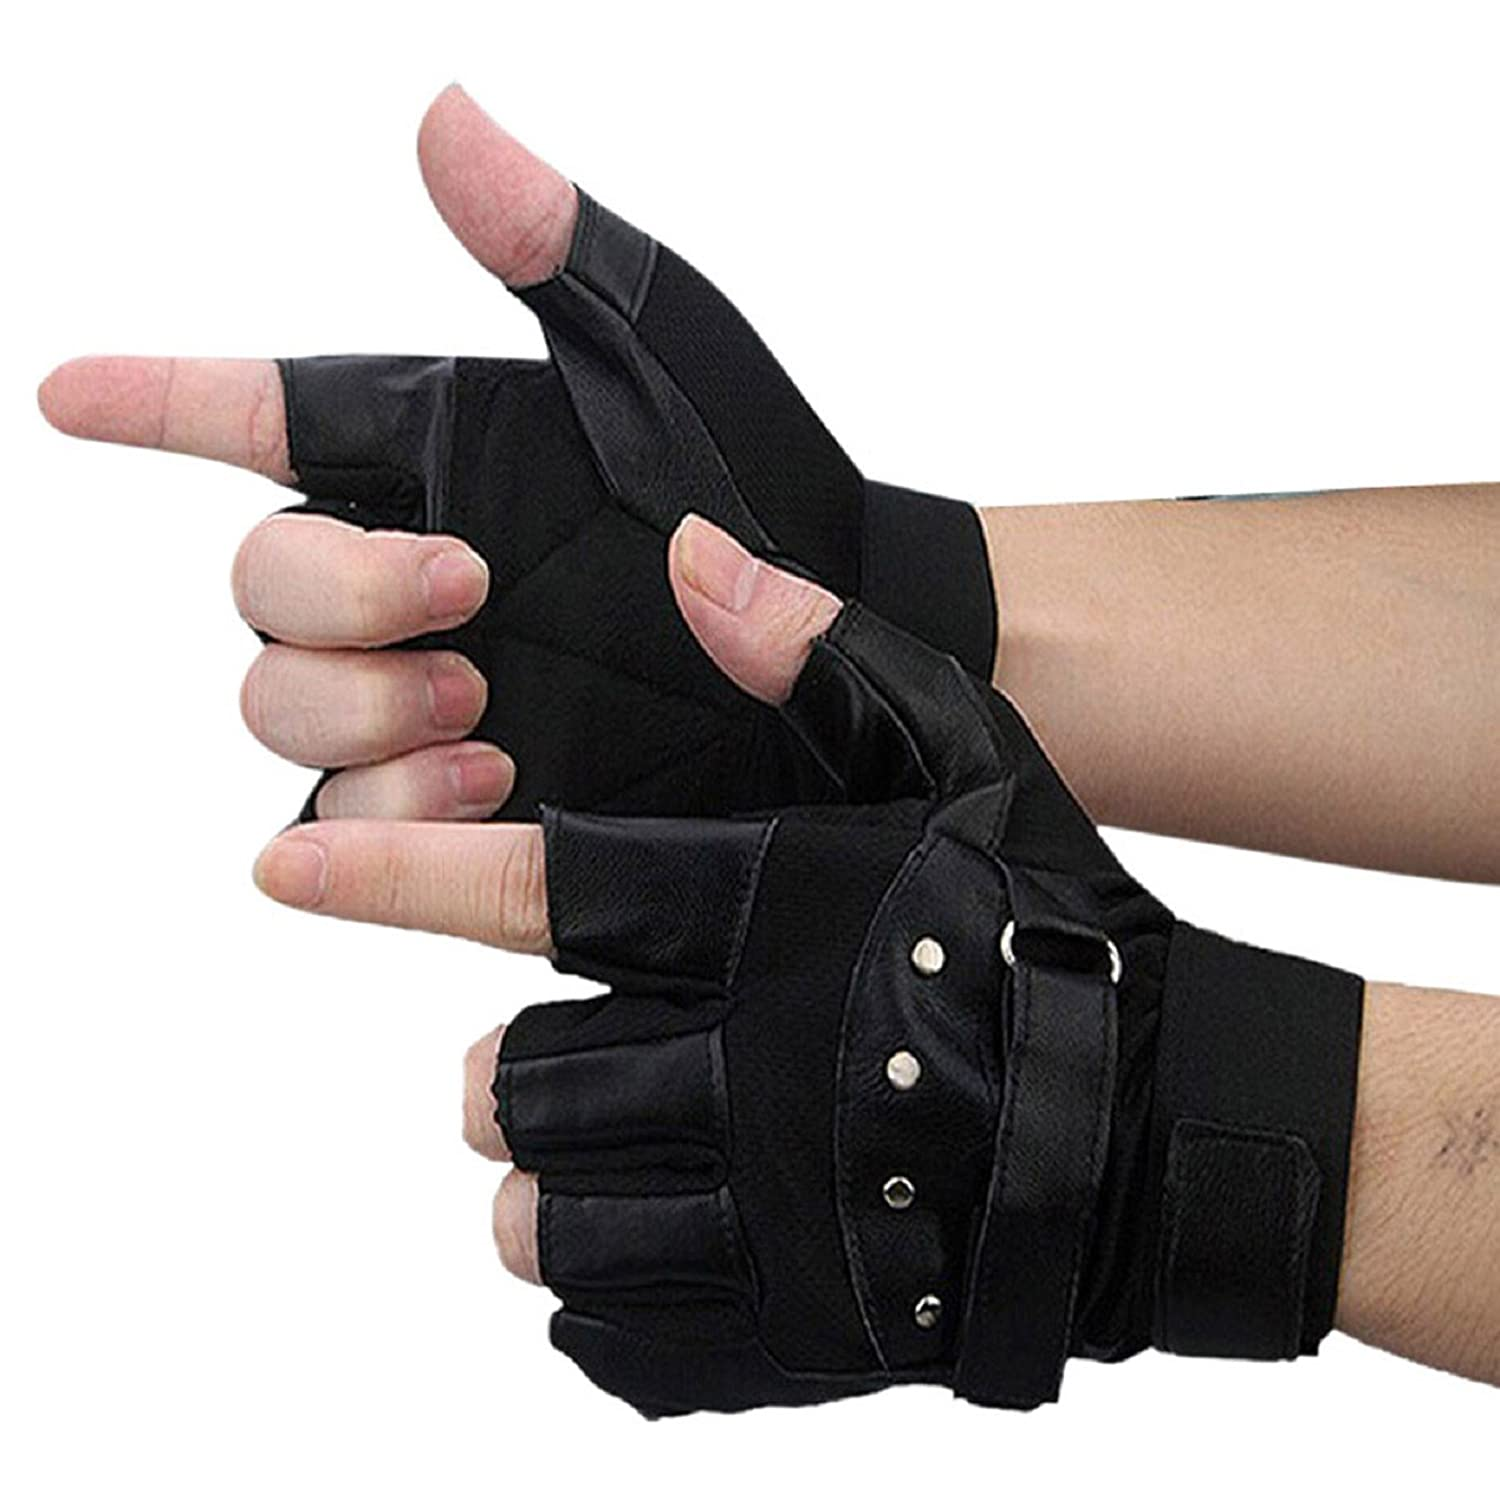 Fingerless leather gloves mens accessories - Coromose Men Soft Leather Driving Motorcycle Biker Fingerless Warm Gloves At Amazon Men S Clothing Store